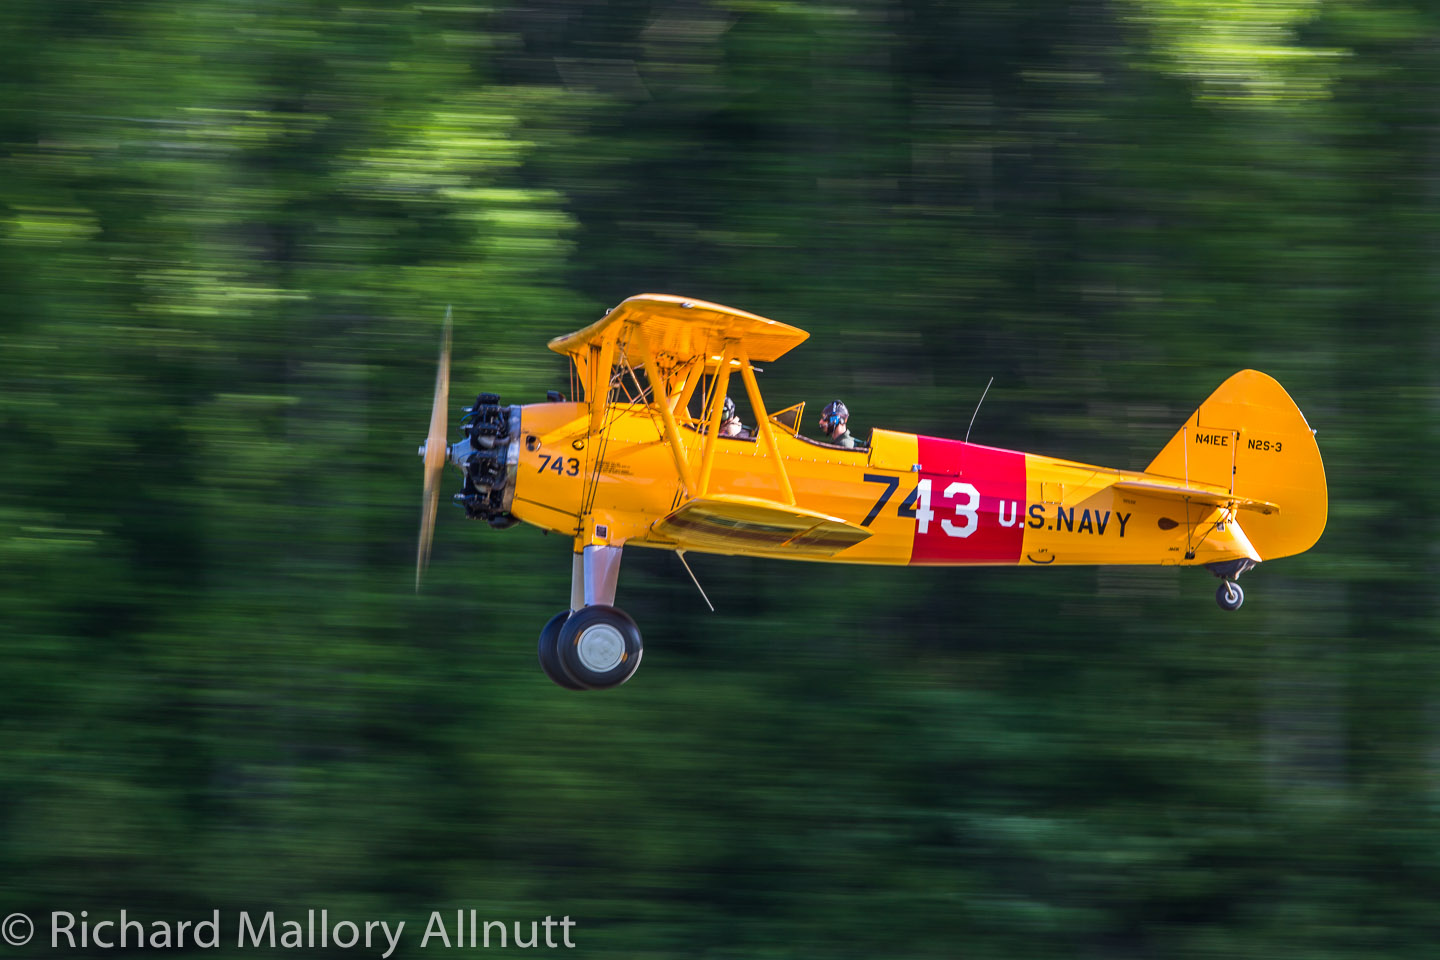 _C8A0948 - Richard Mallory Allnutt photo - Warbirds Over the Beach - Military Aviation Museum - Pungo, VA - May 17, 2014